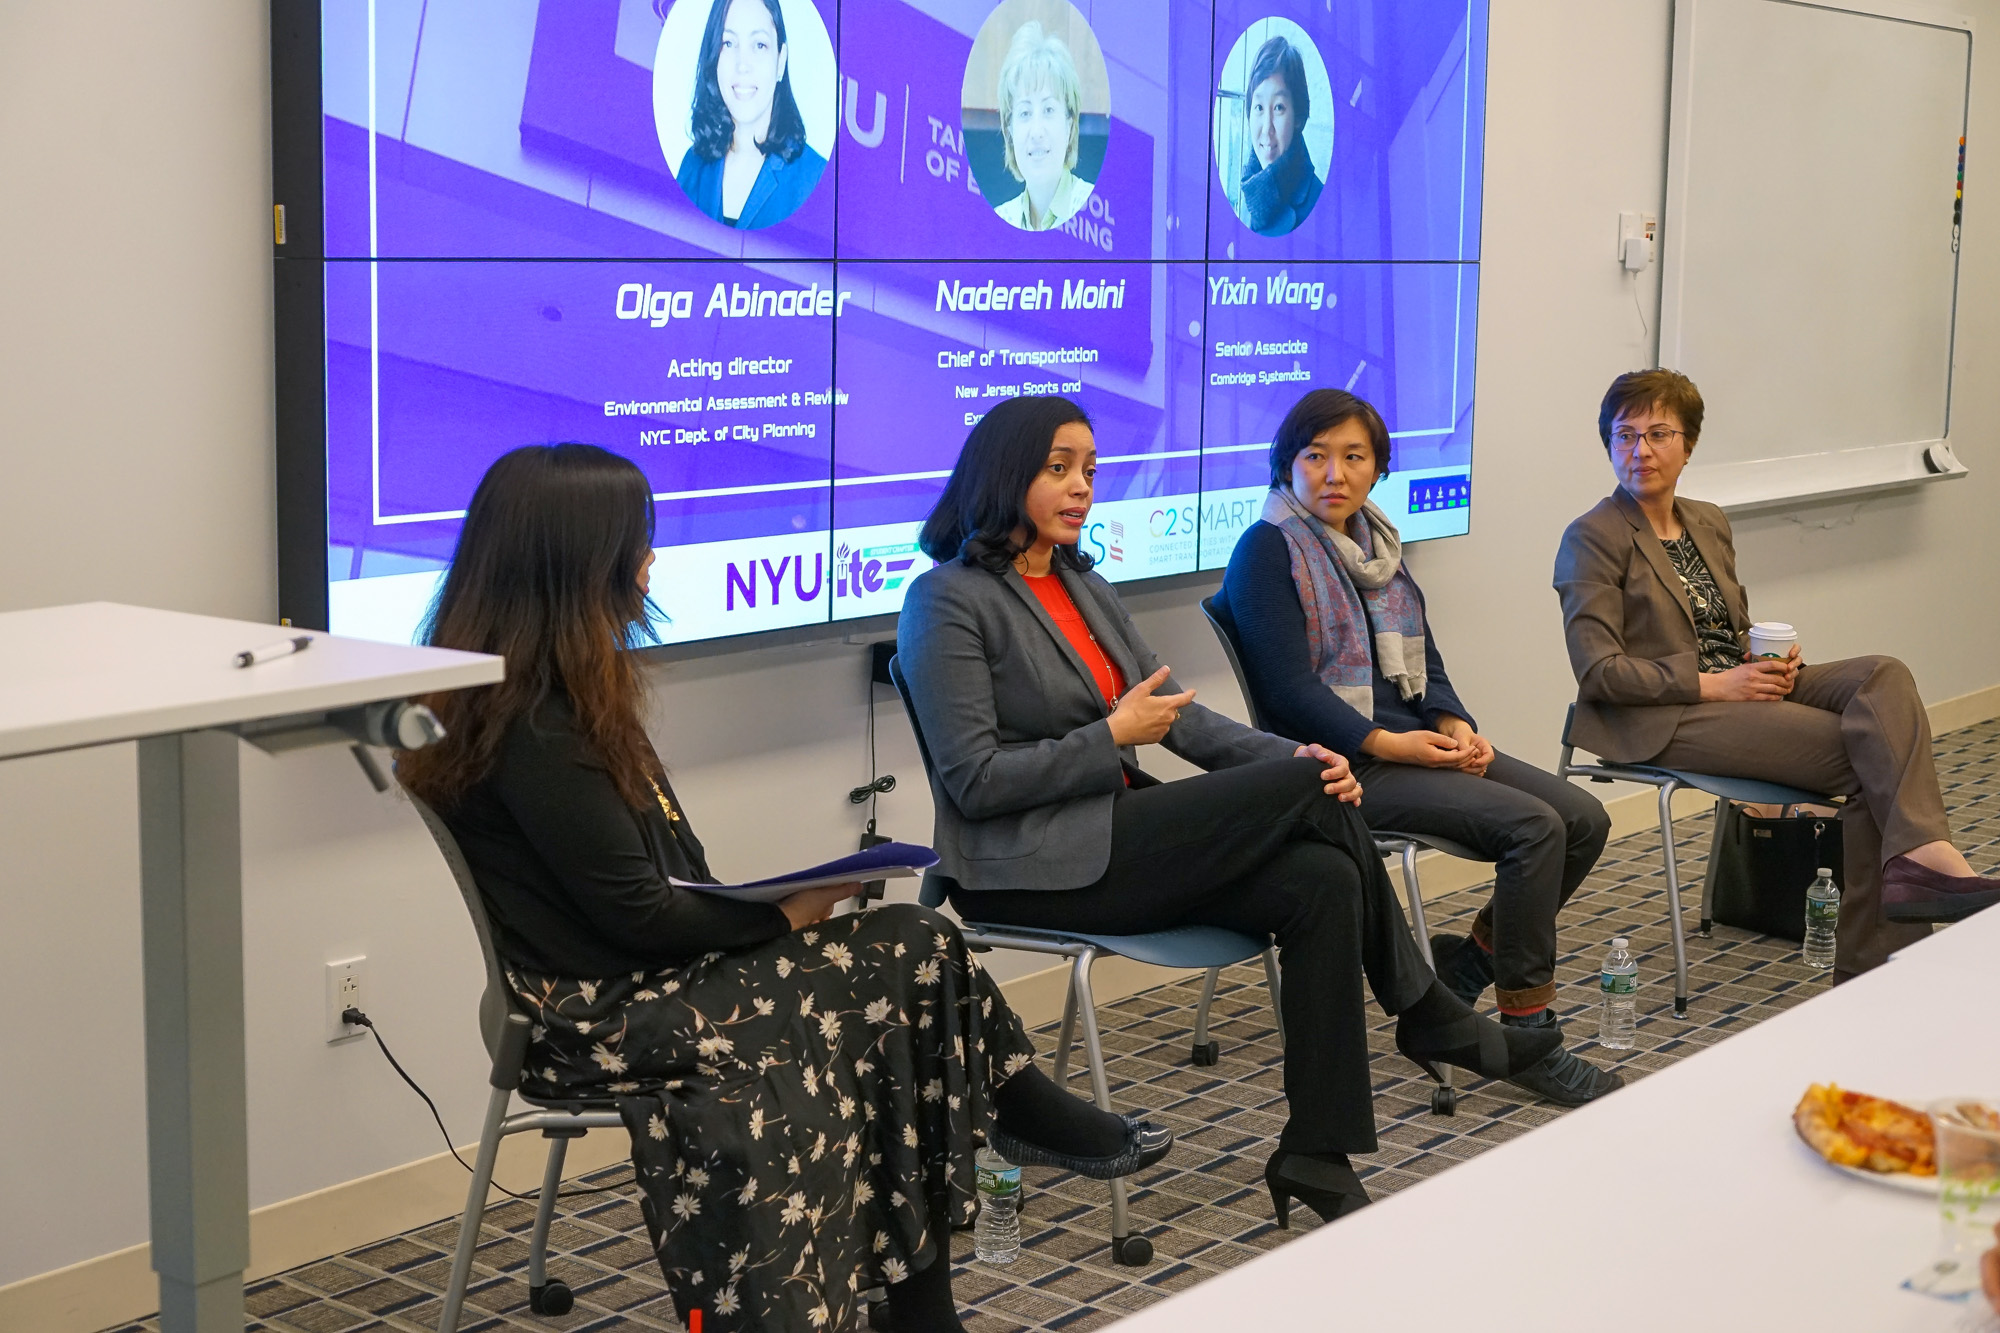 Women in Transportation Panel speakers and moderator